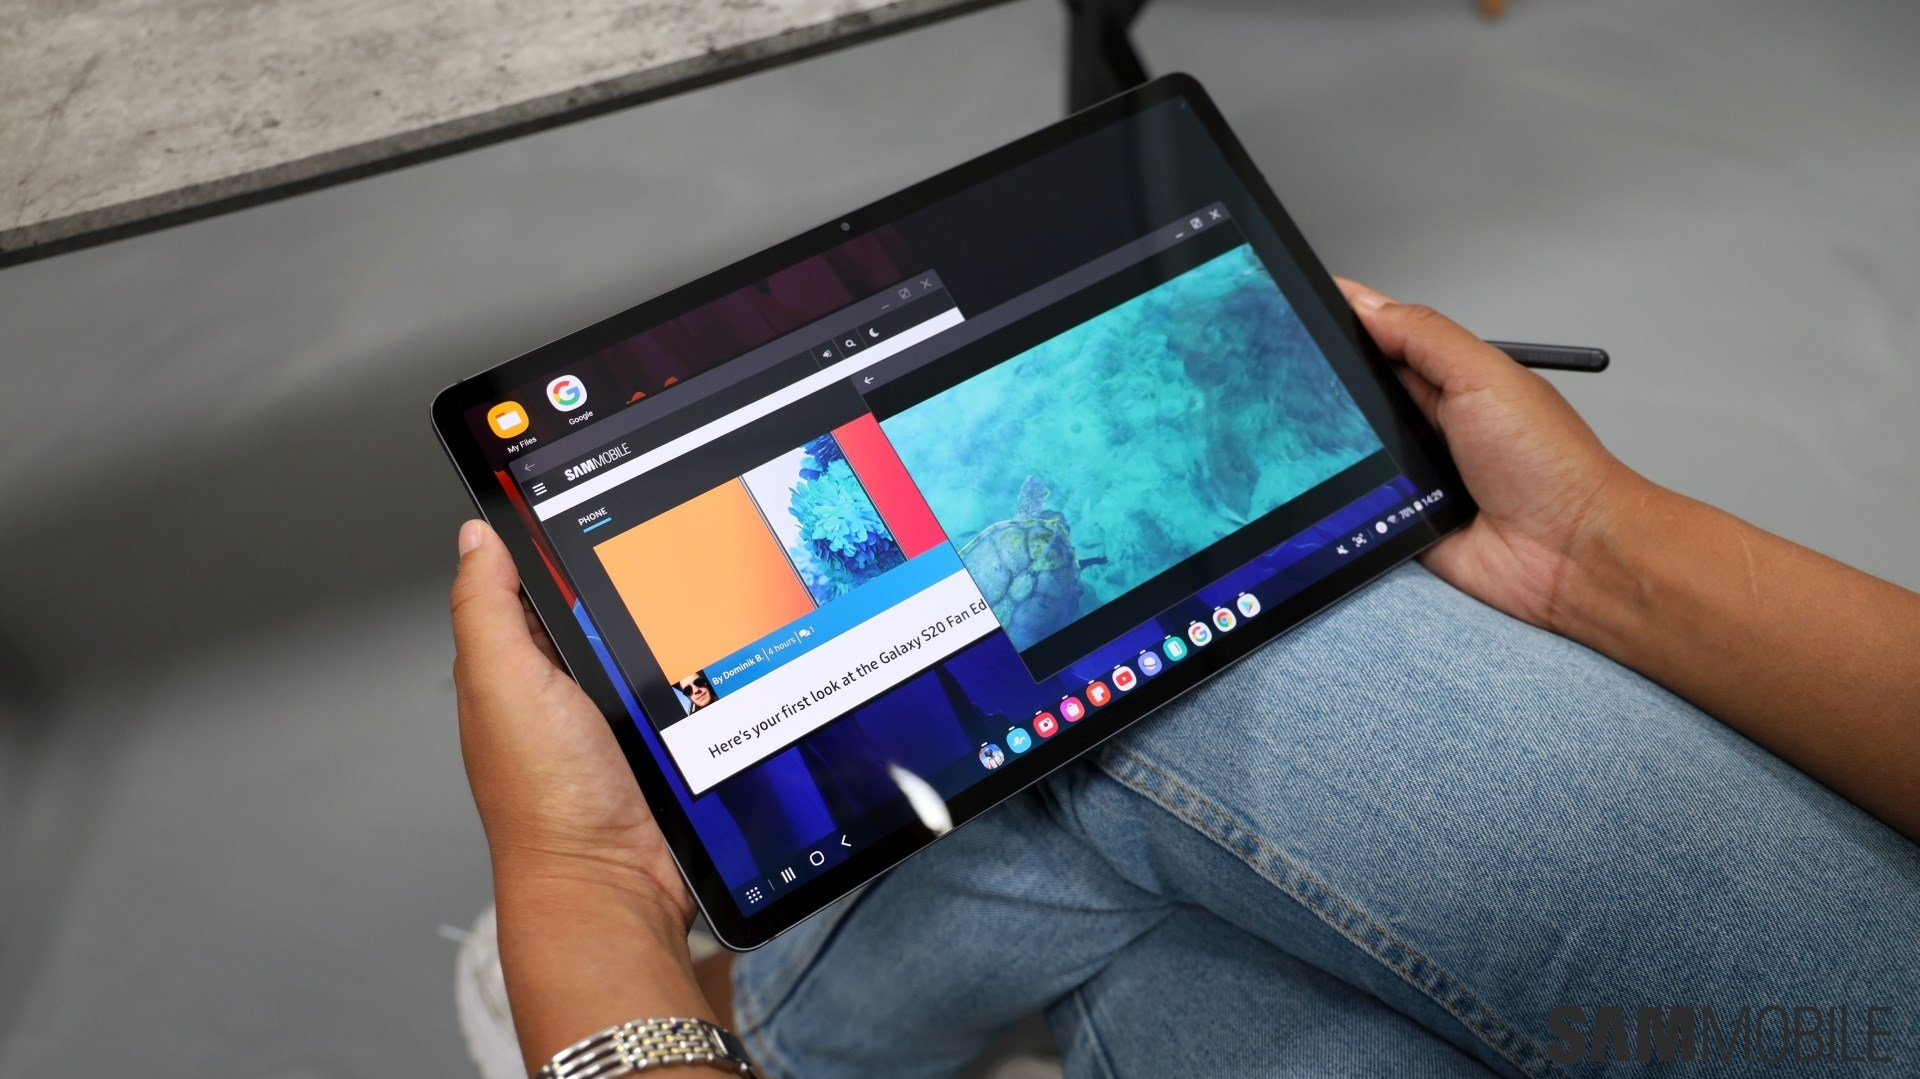 Best Samsung Galaxy Tablets in December 2020 - Picked by experts - SamMobile